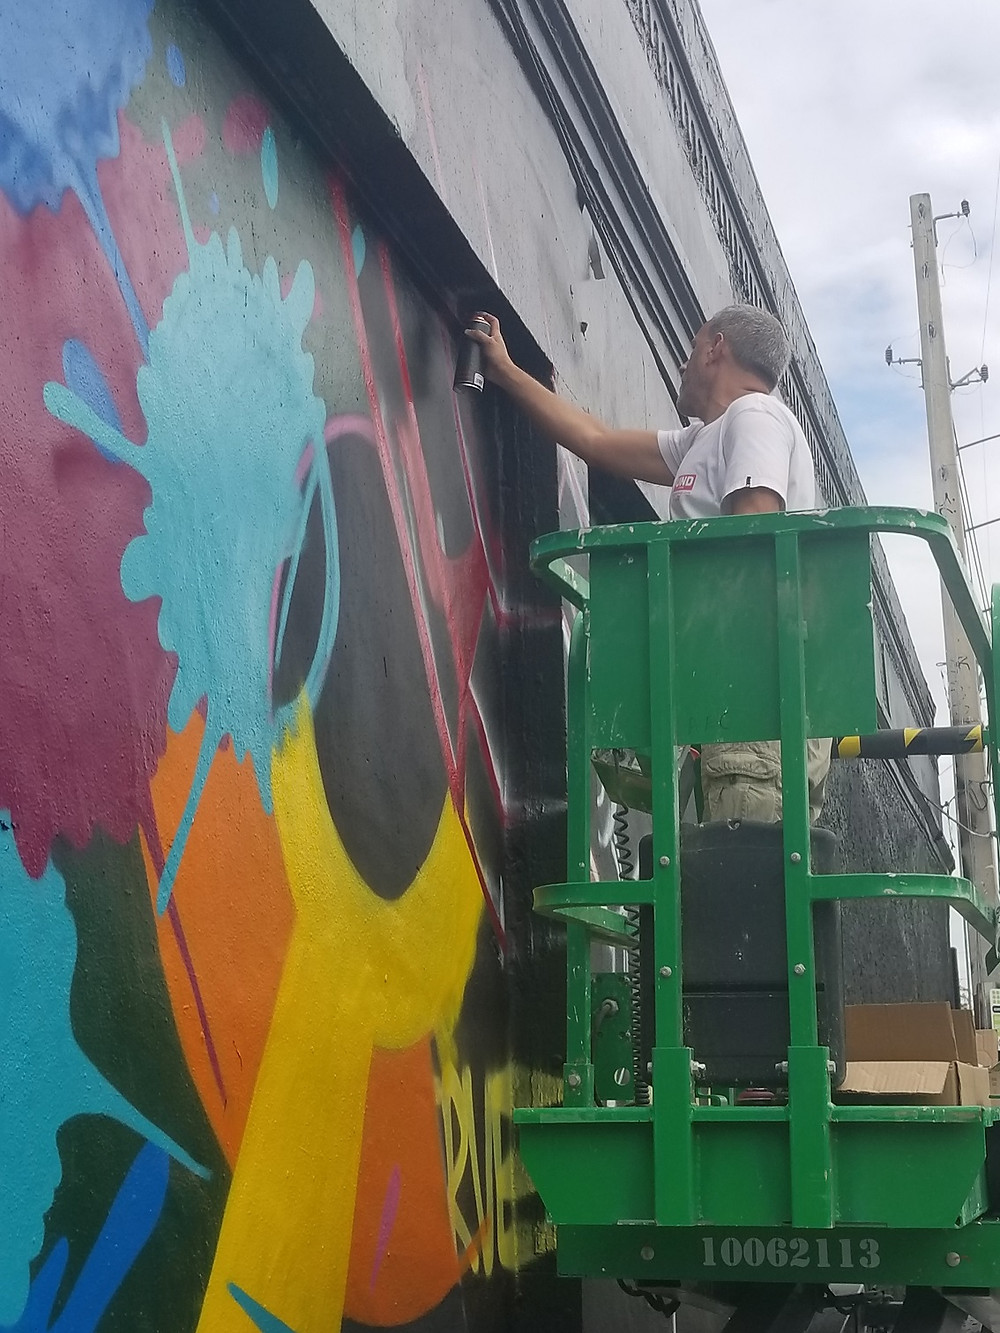 Artist, Crash, working on a mural in Wynwood